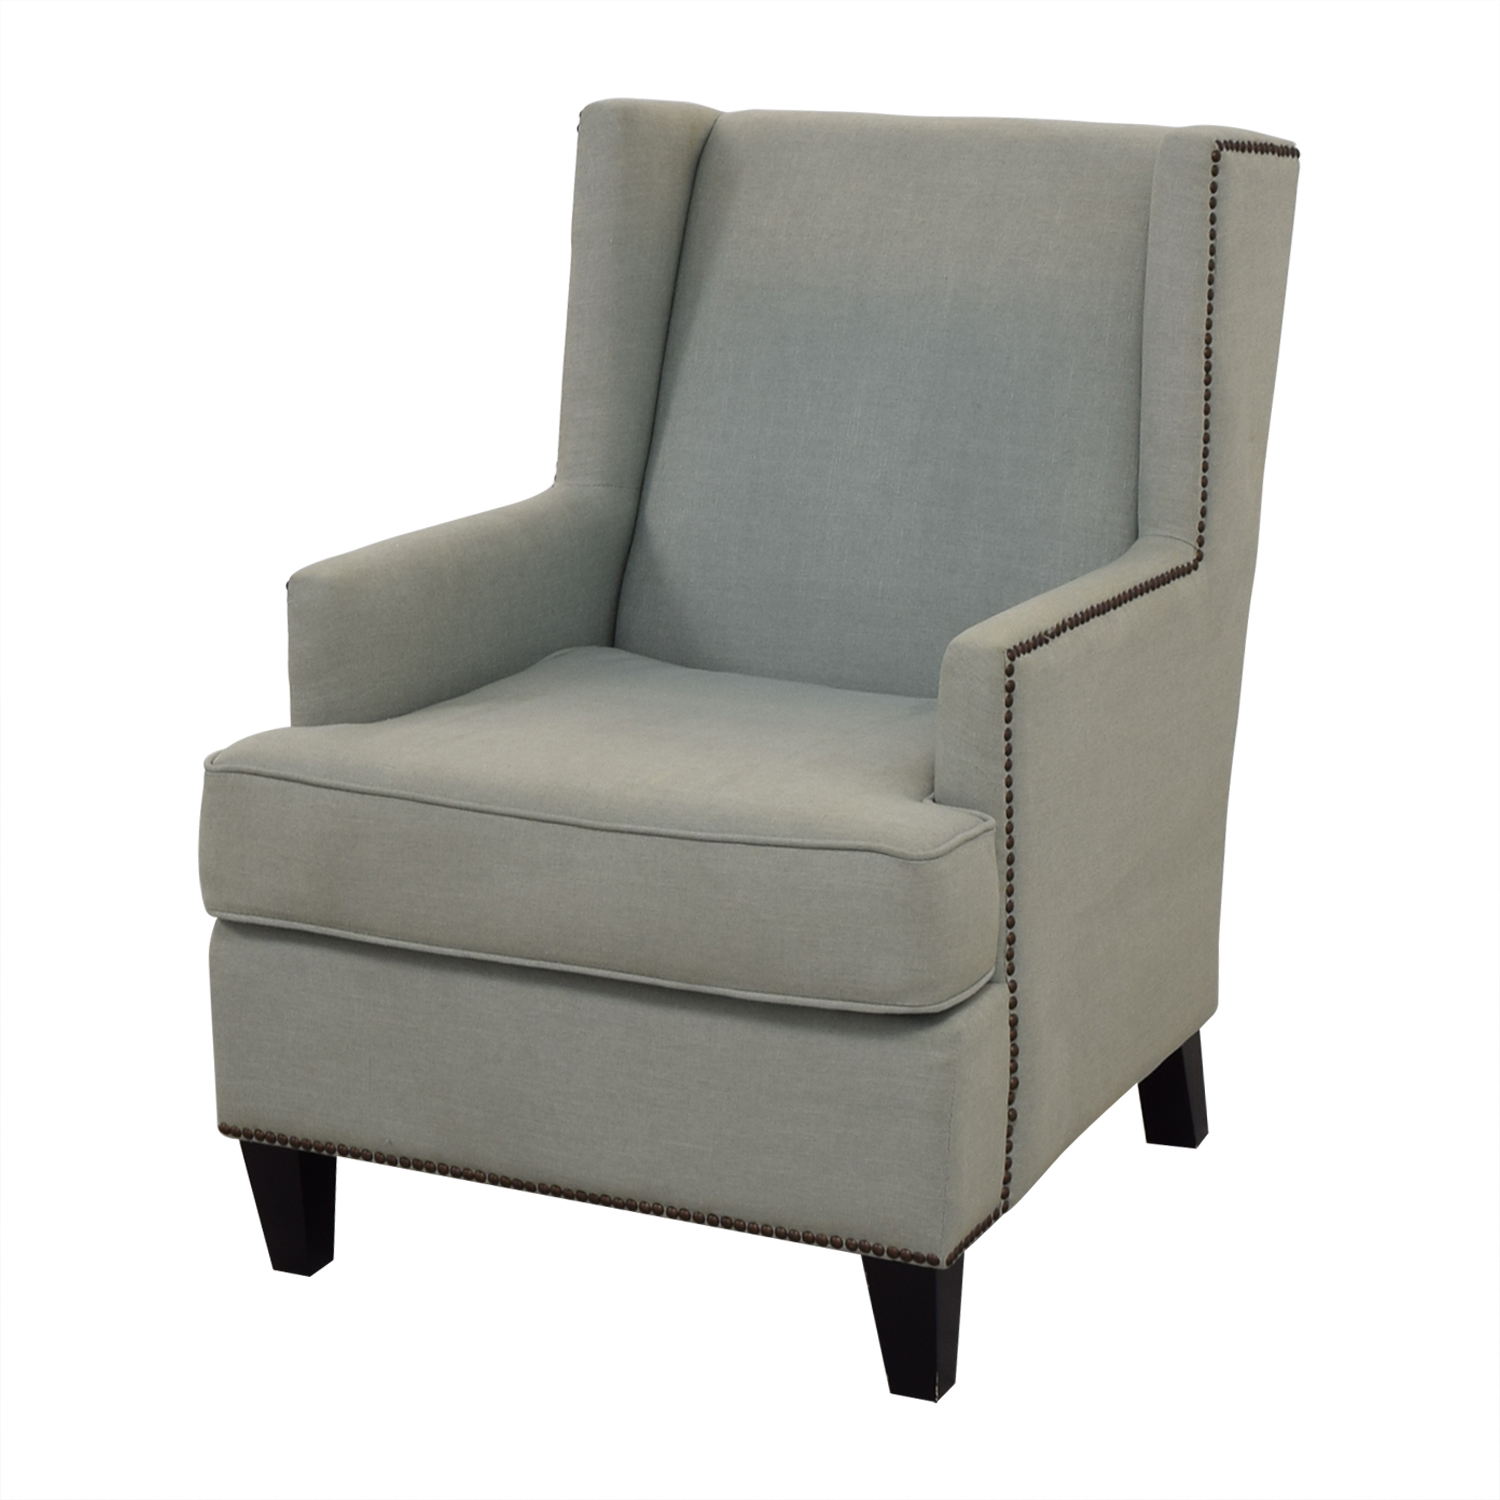 shop One Kings Lane One Kings Lane Blue Upholstered Arm Chair online